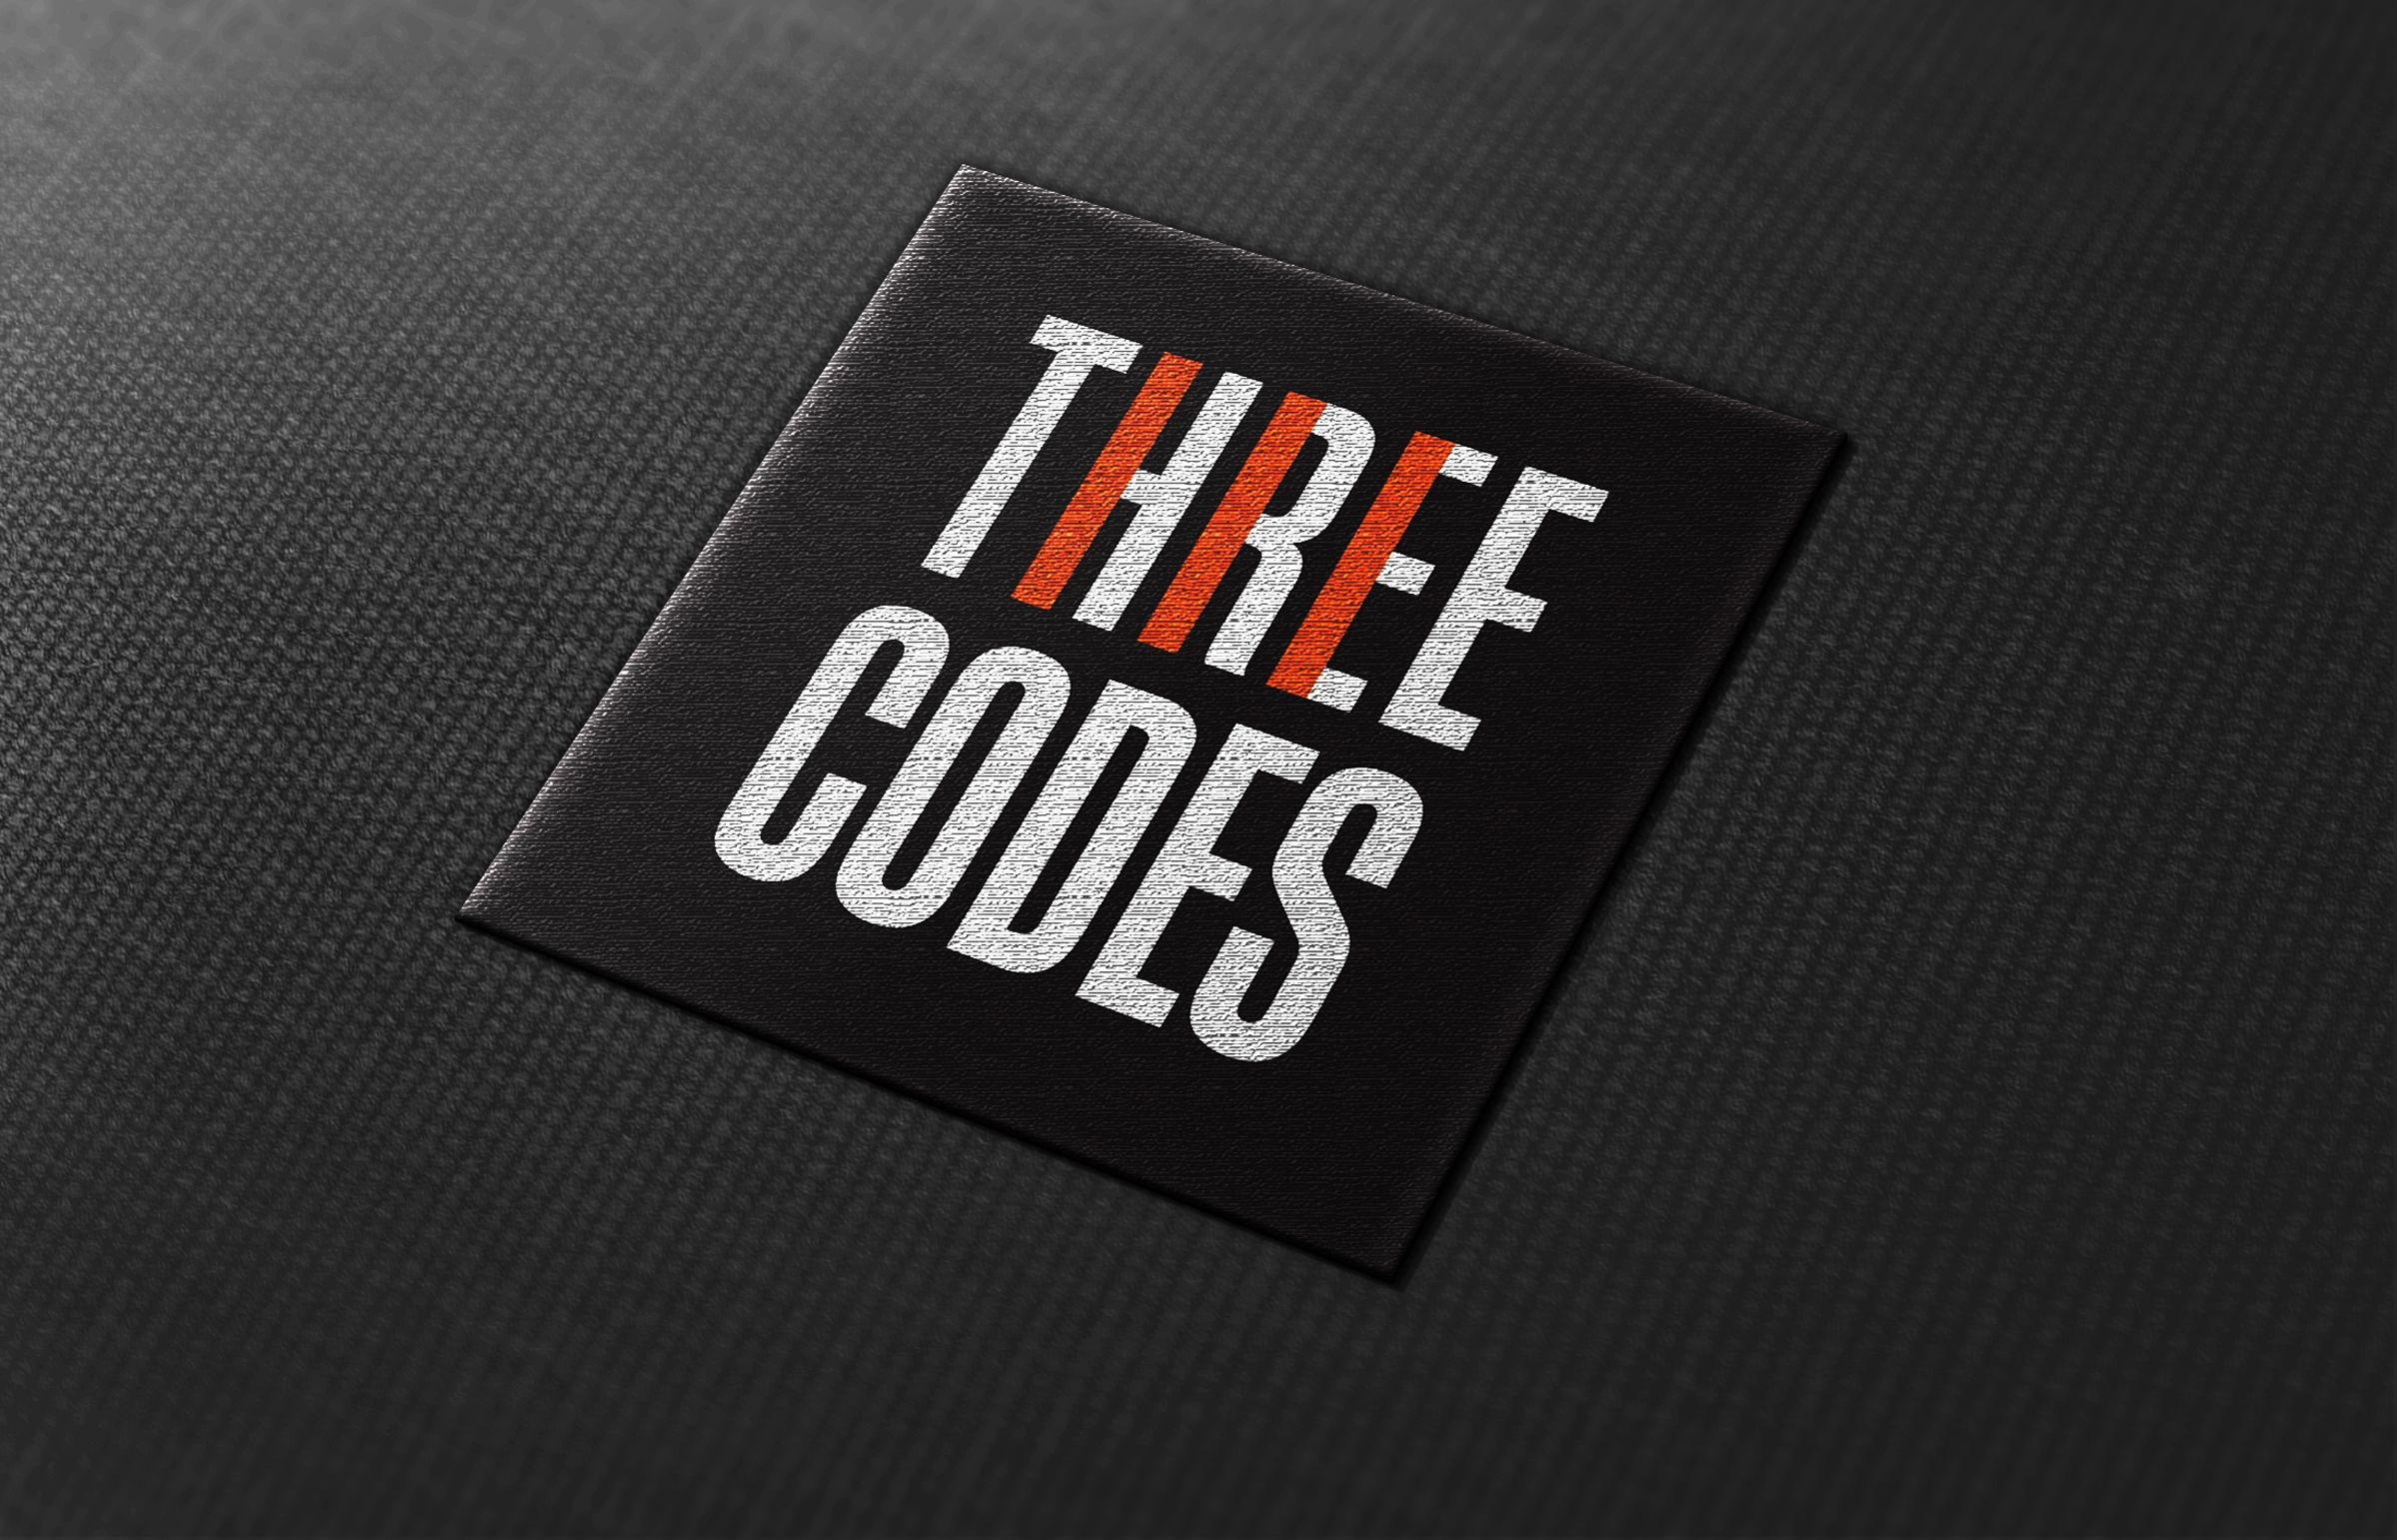 Badge for Three Codes, an electrical company by Ottawa Graphic Designer idApostle